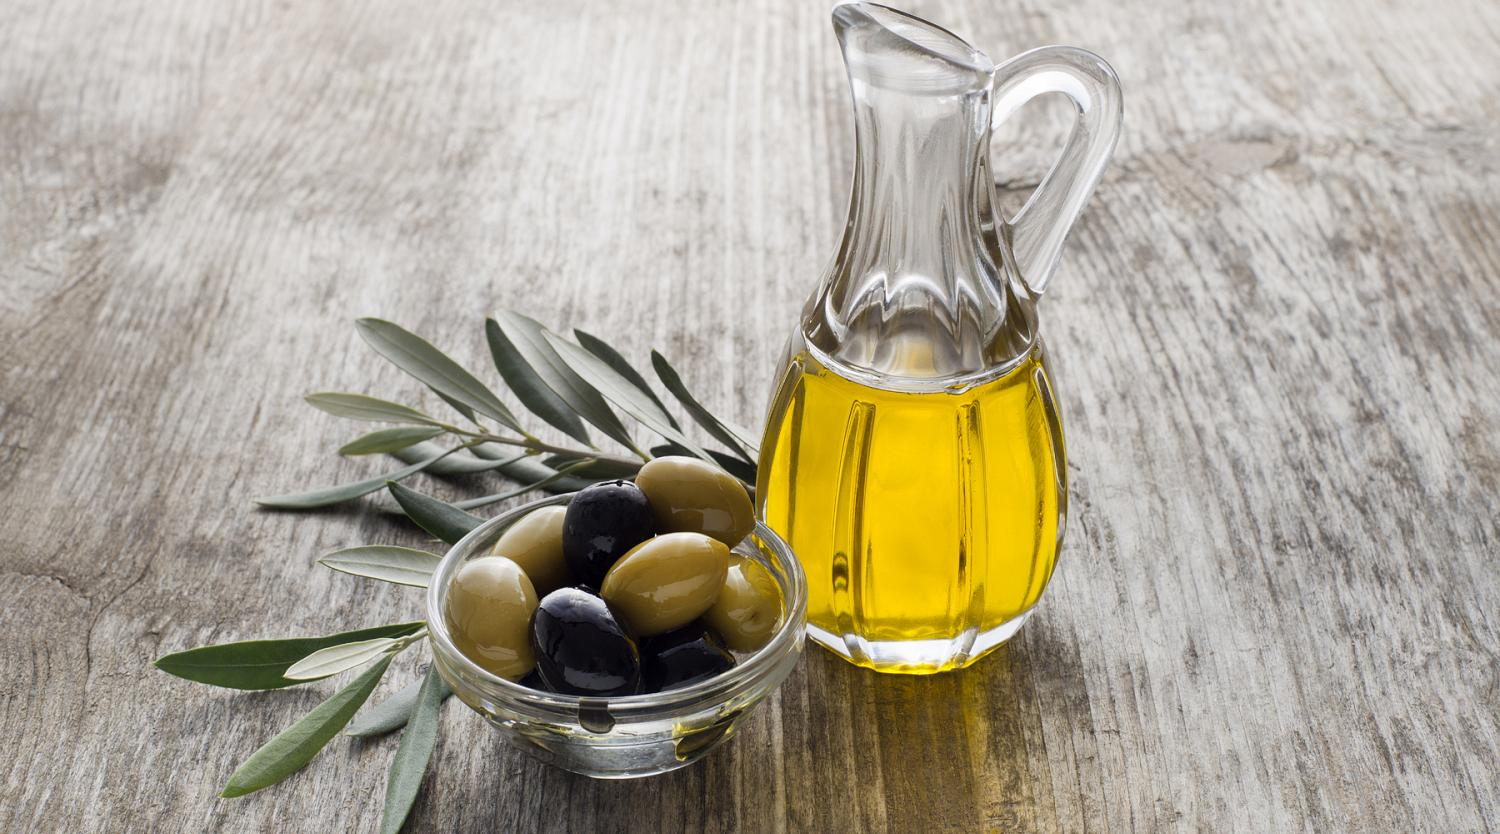 First class olive oil